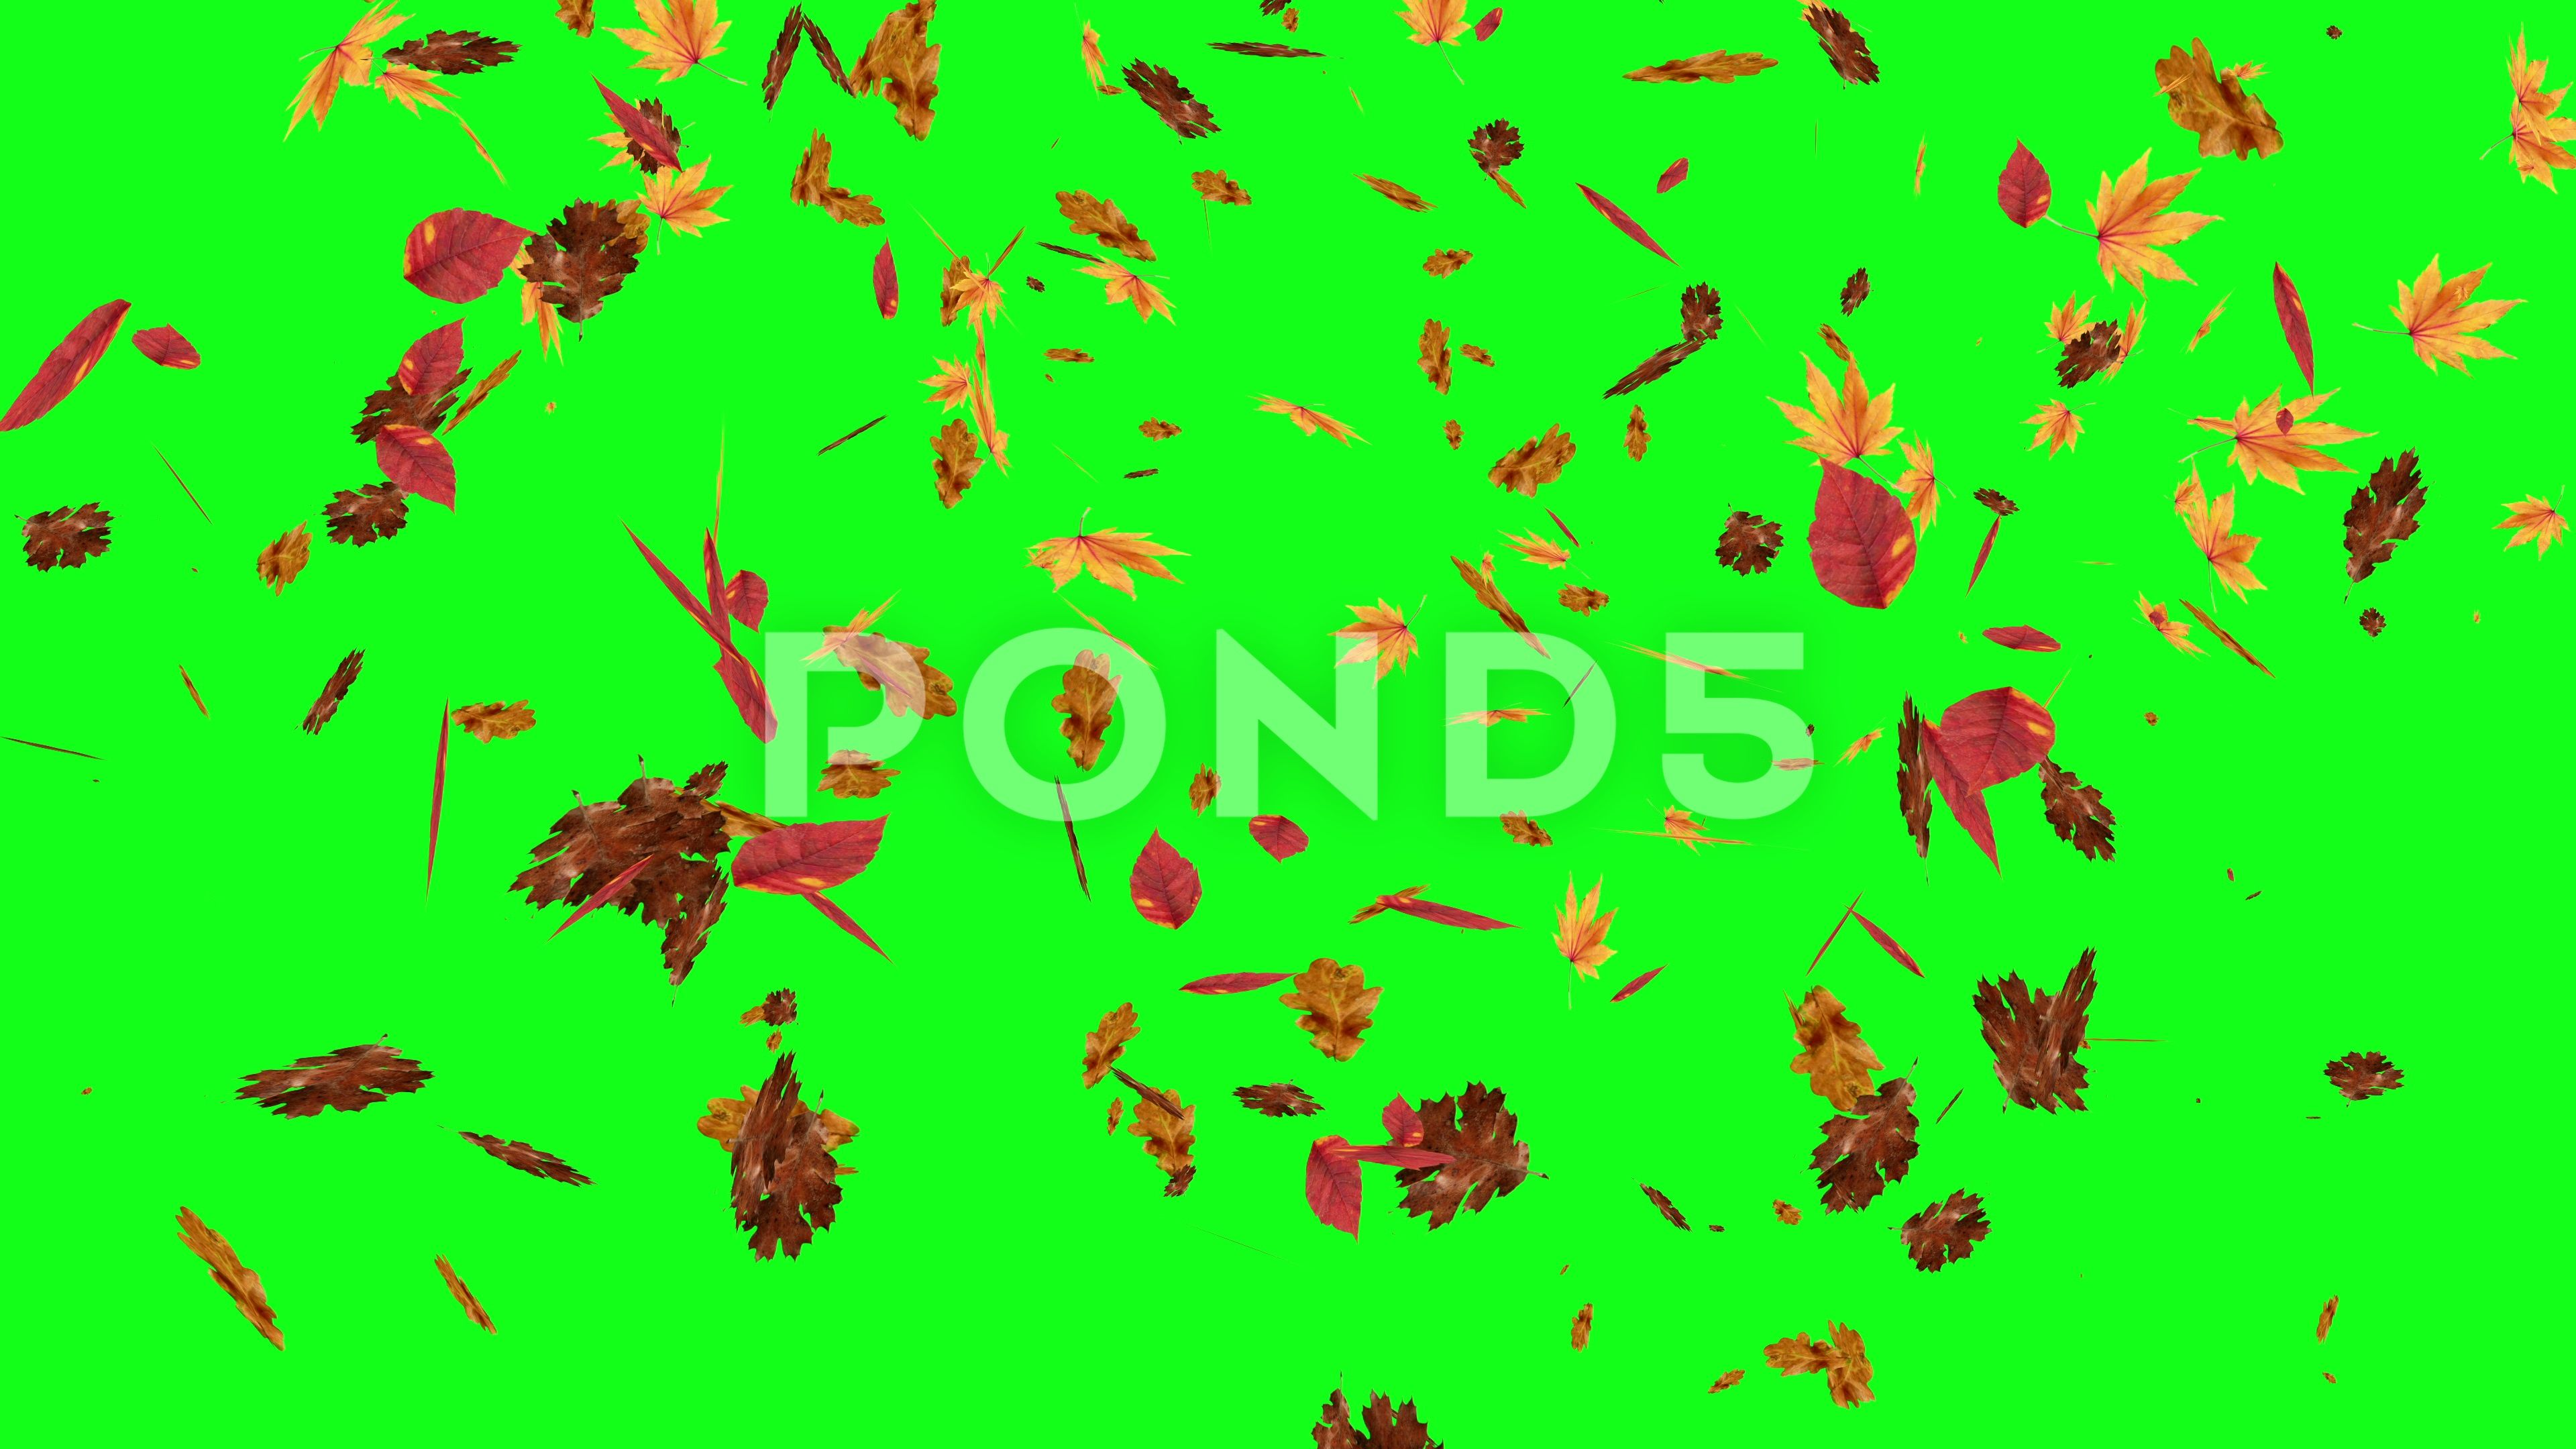 Autumn Leaves Falling On Green Screen Chroma Key Editable Background Stock Footage Ad Green Screen Falling Autumn Chroma Key Greenscreen Autumn Leaves